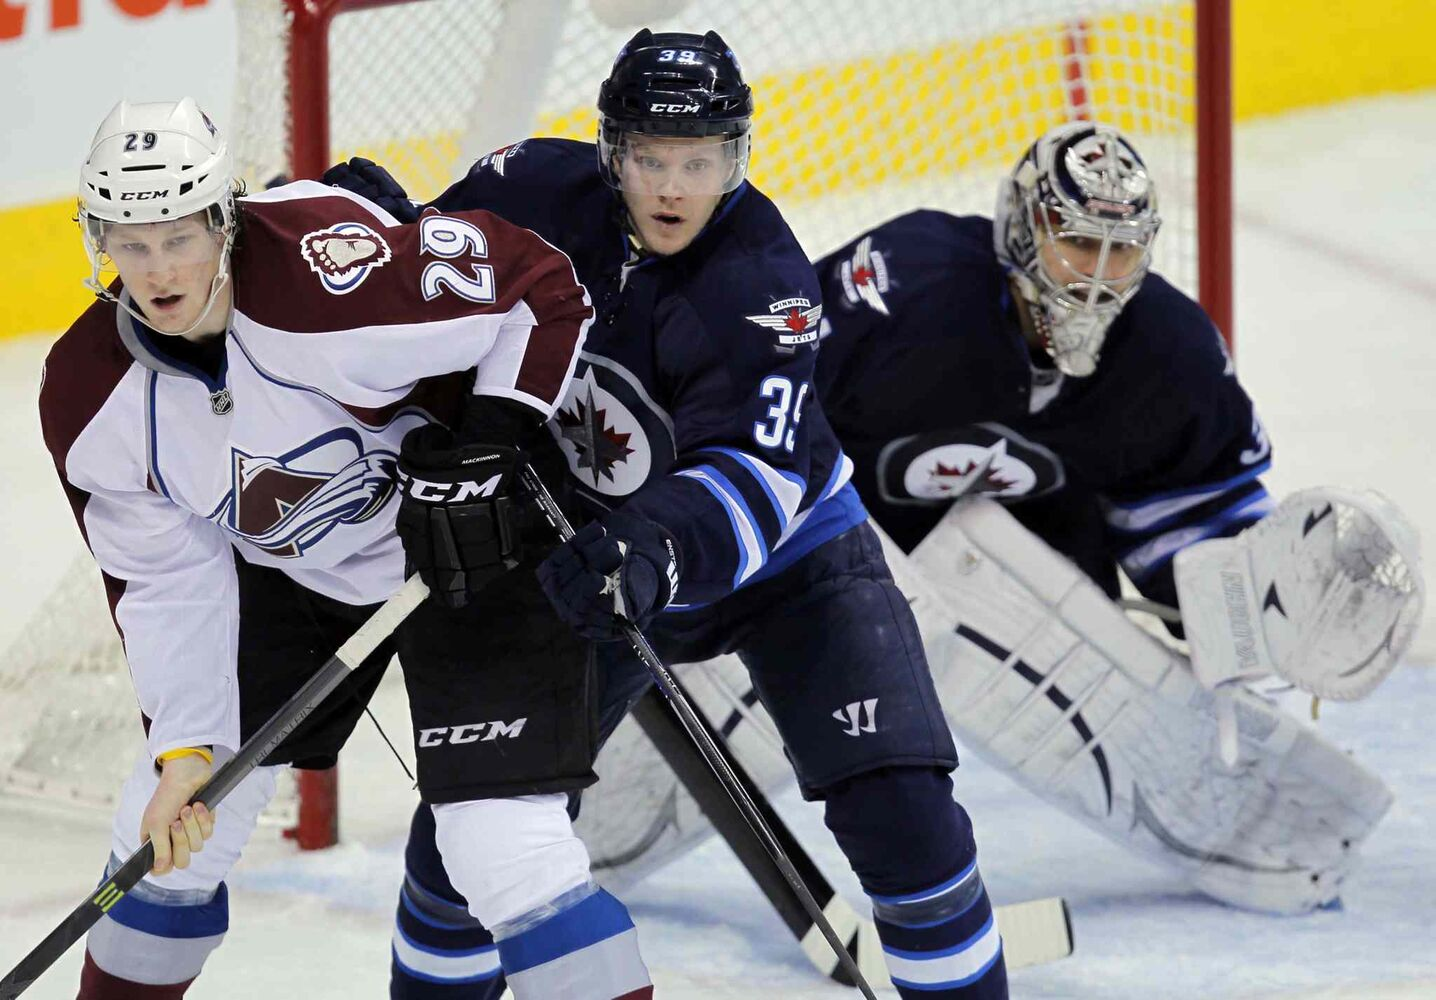 Nathan MacKinnon (left) of the Colorado Avalanche and Jets defenceman Tobias Enstrom jostle for positionin front of  Ondrej Pavelec in the second period. (BORIS MINKEVICH / WINNIPEG FREE PRESS)